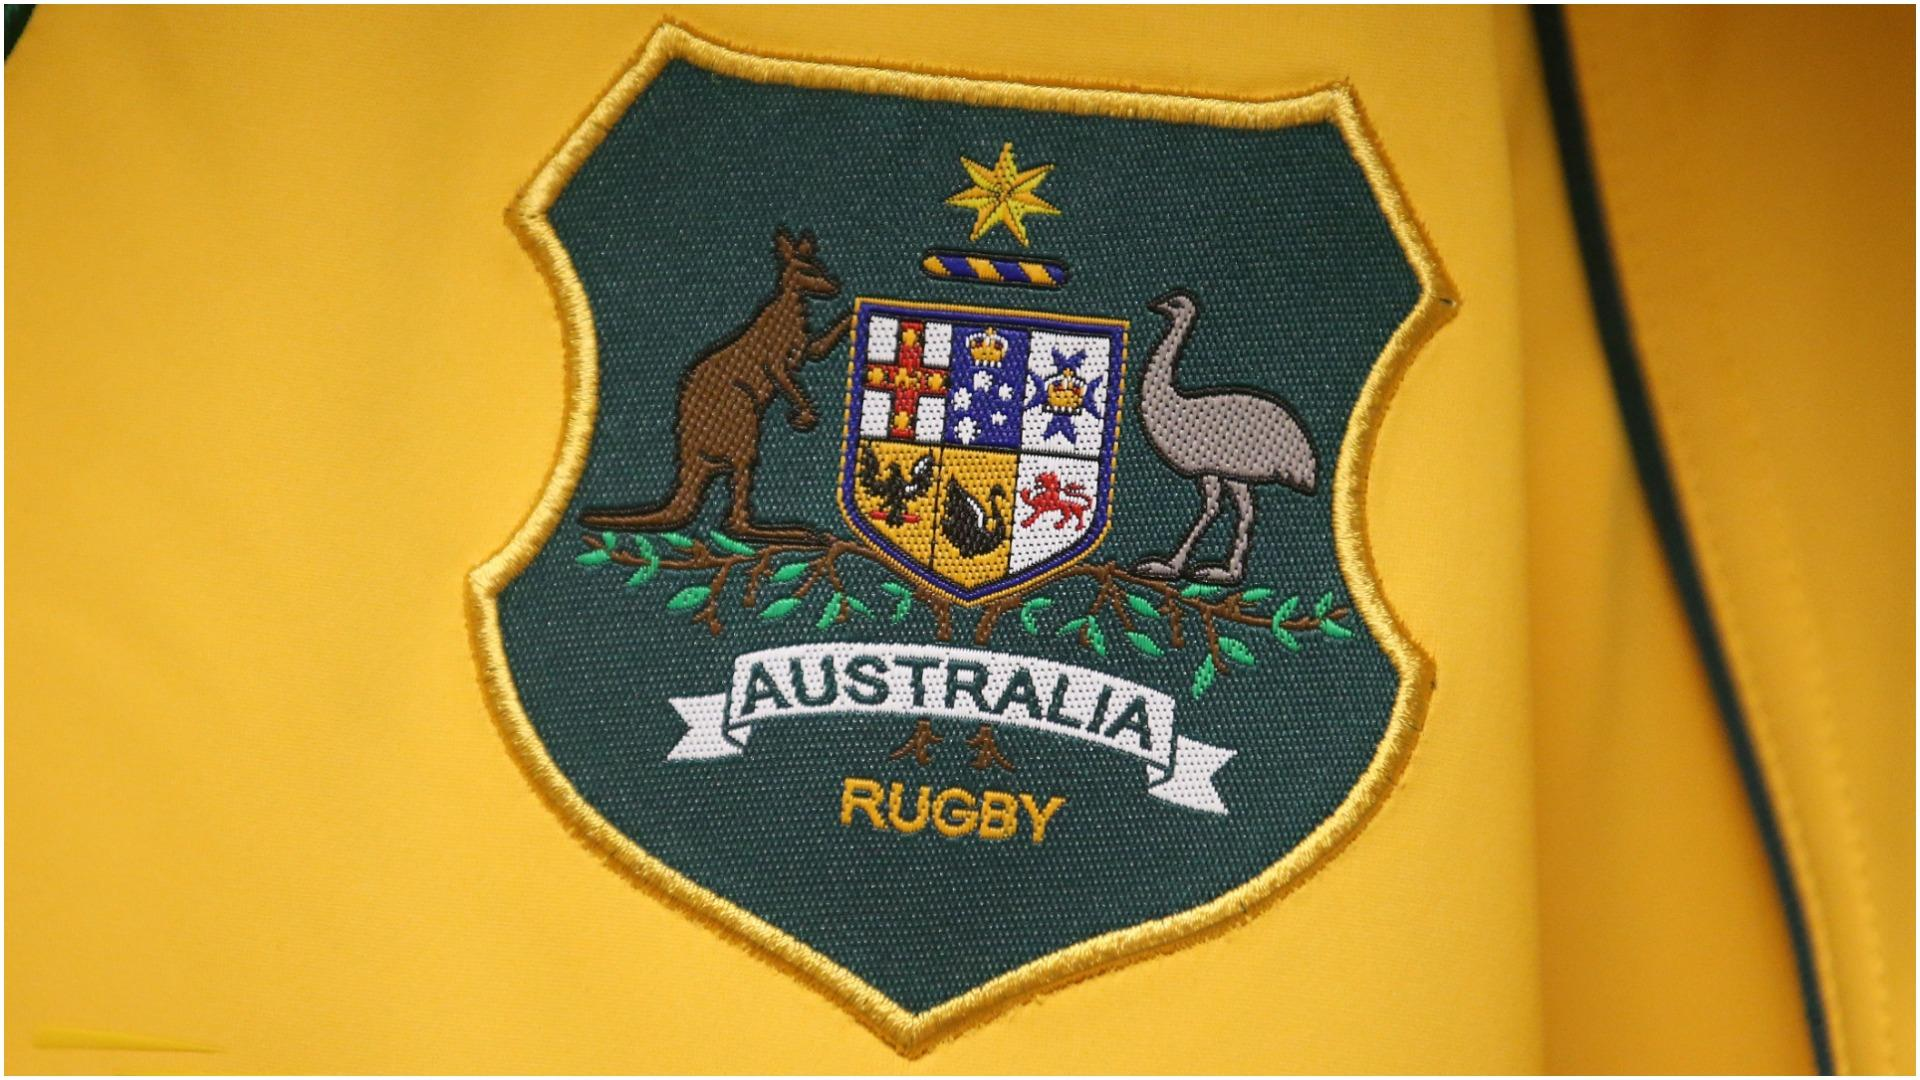 Rugby Australia No Record Of Wallabies Match Fixing Investigation